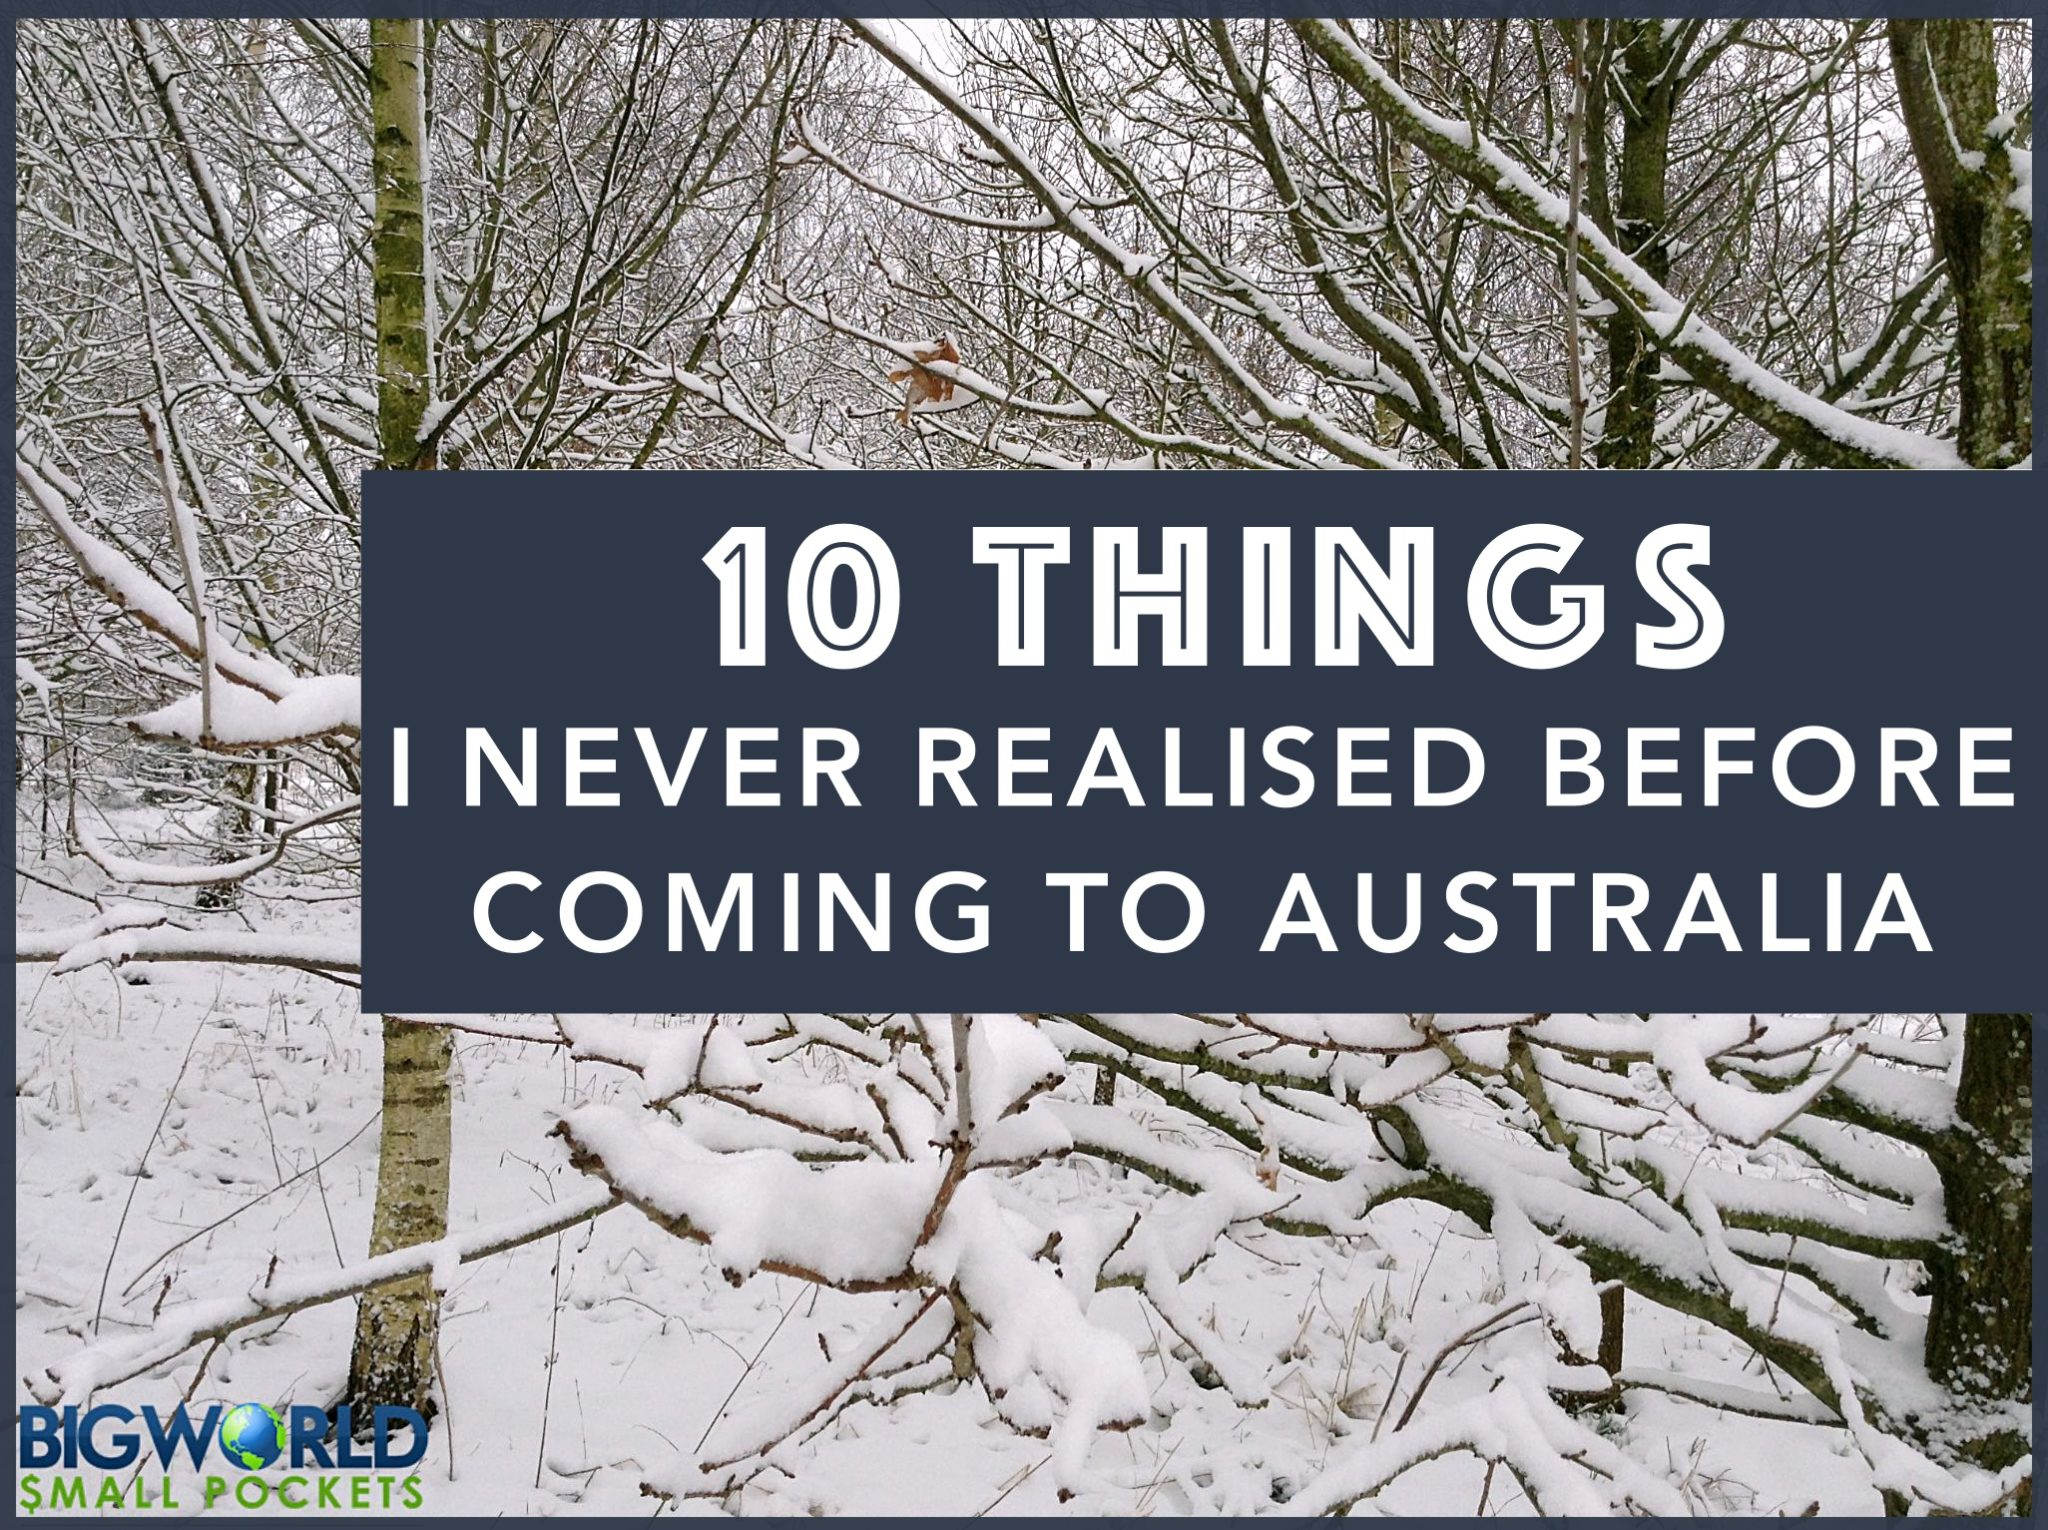 10 Things I Never Realised Before Coming to Australia